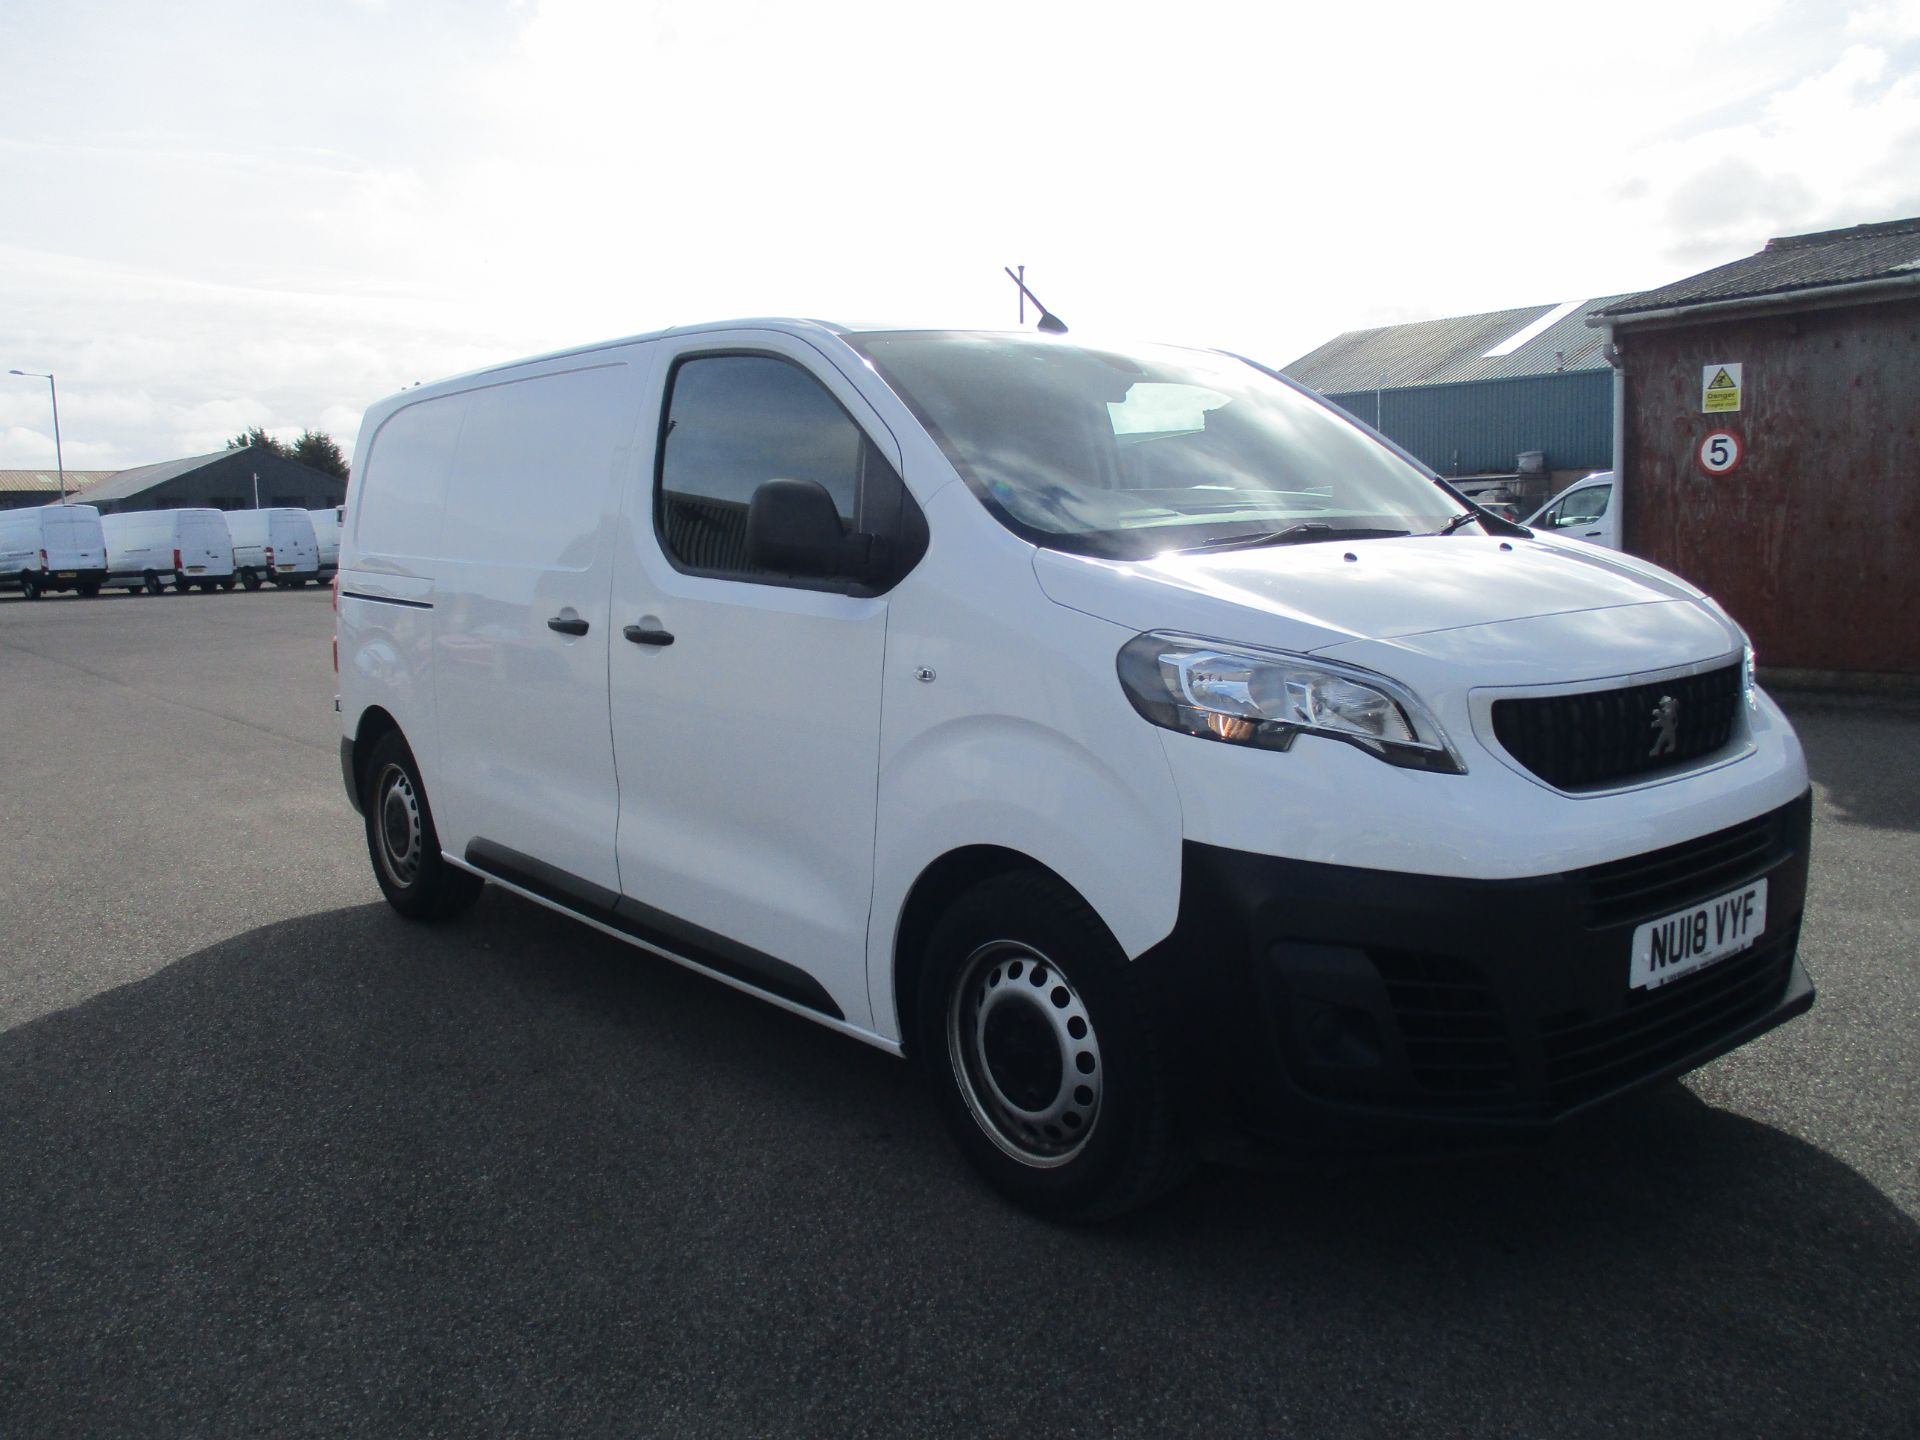 2018 Peugeot Expert STANDARD 1000 1.6 BLUE HDI 95 PROFESSIONAL EURO 6. AIR CON (NU18VYF)